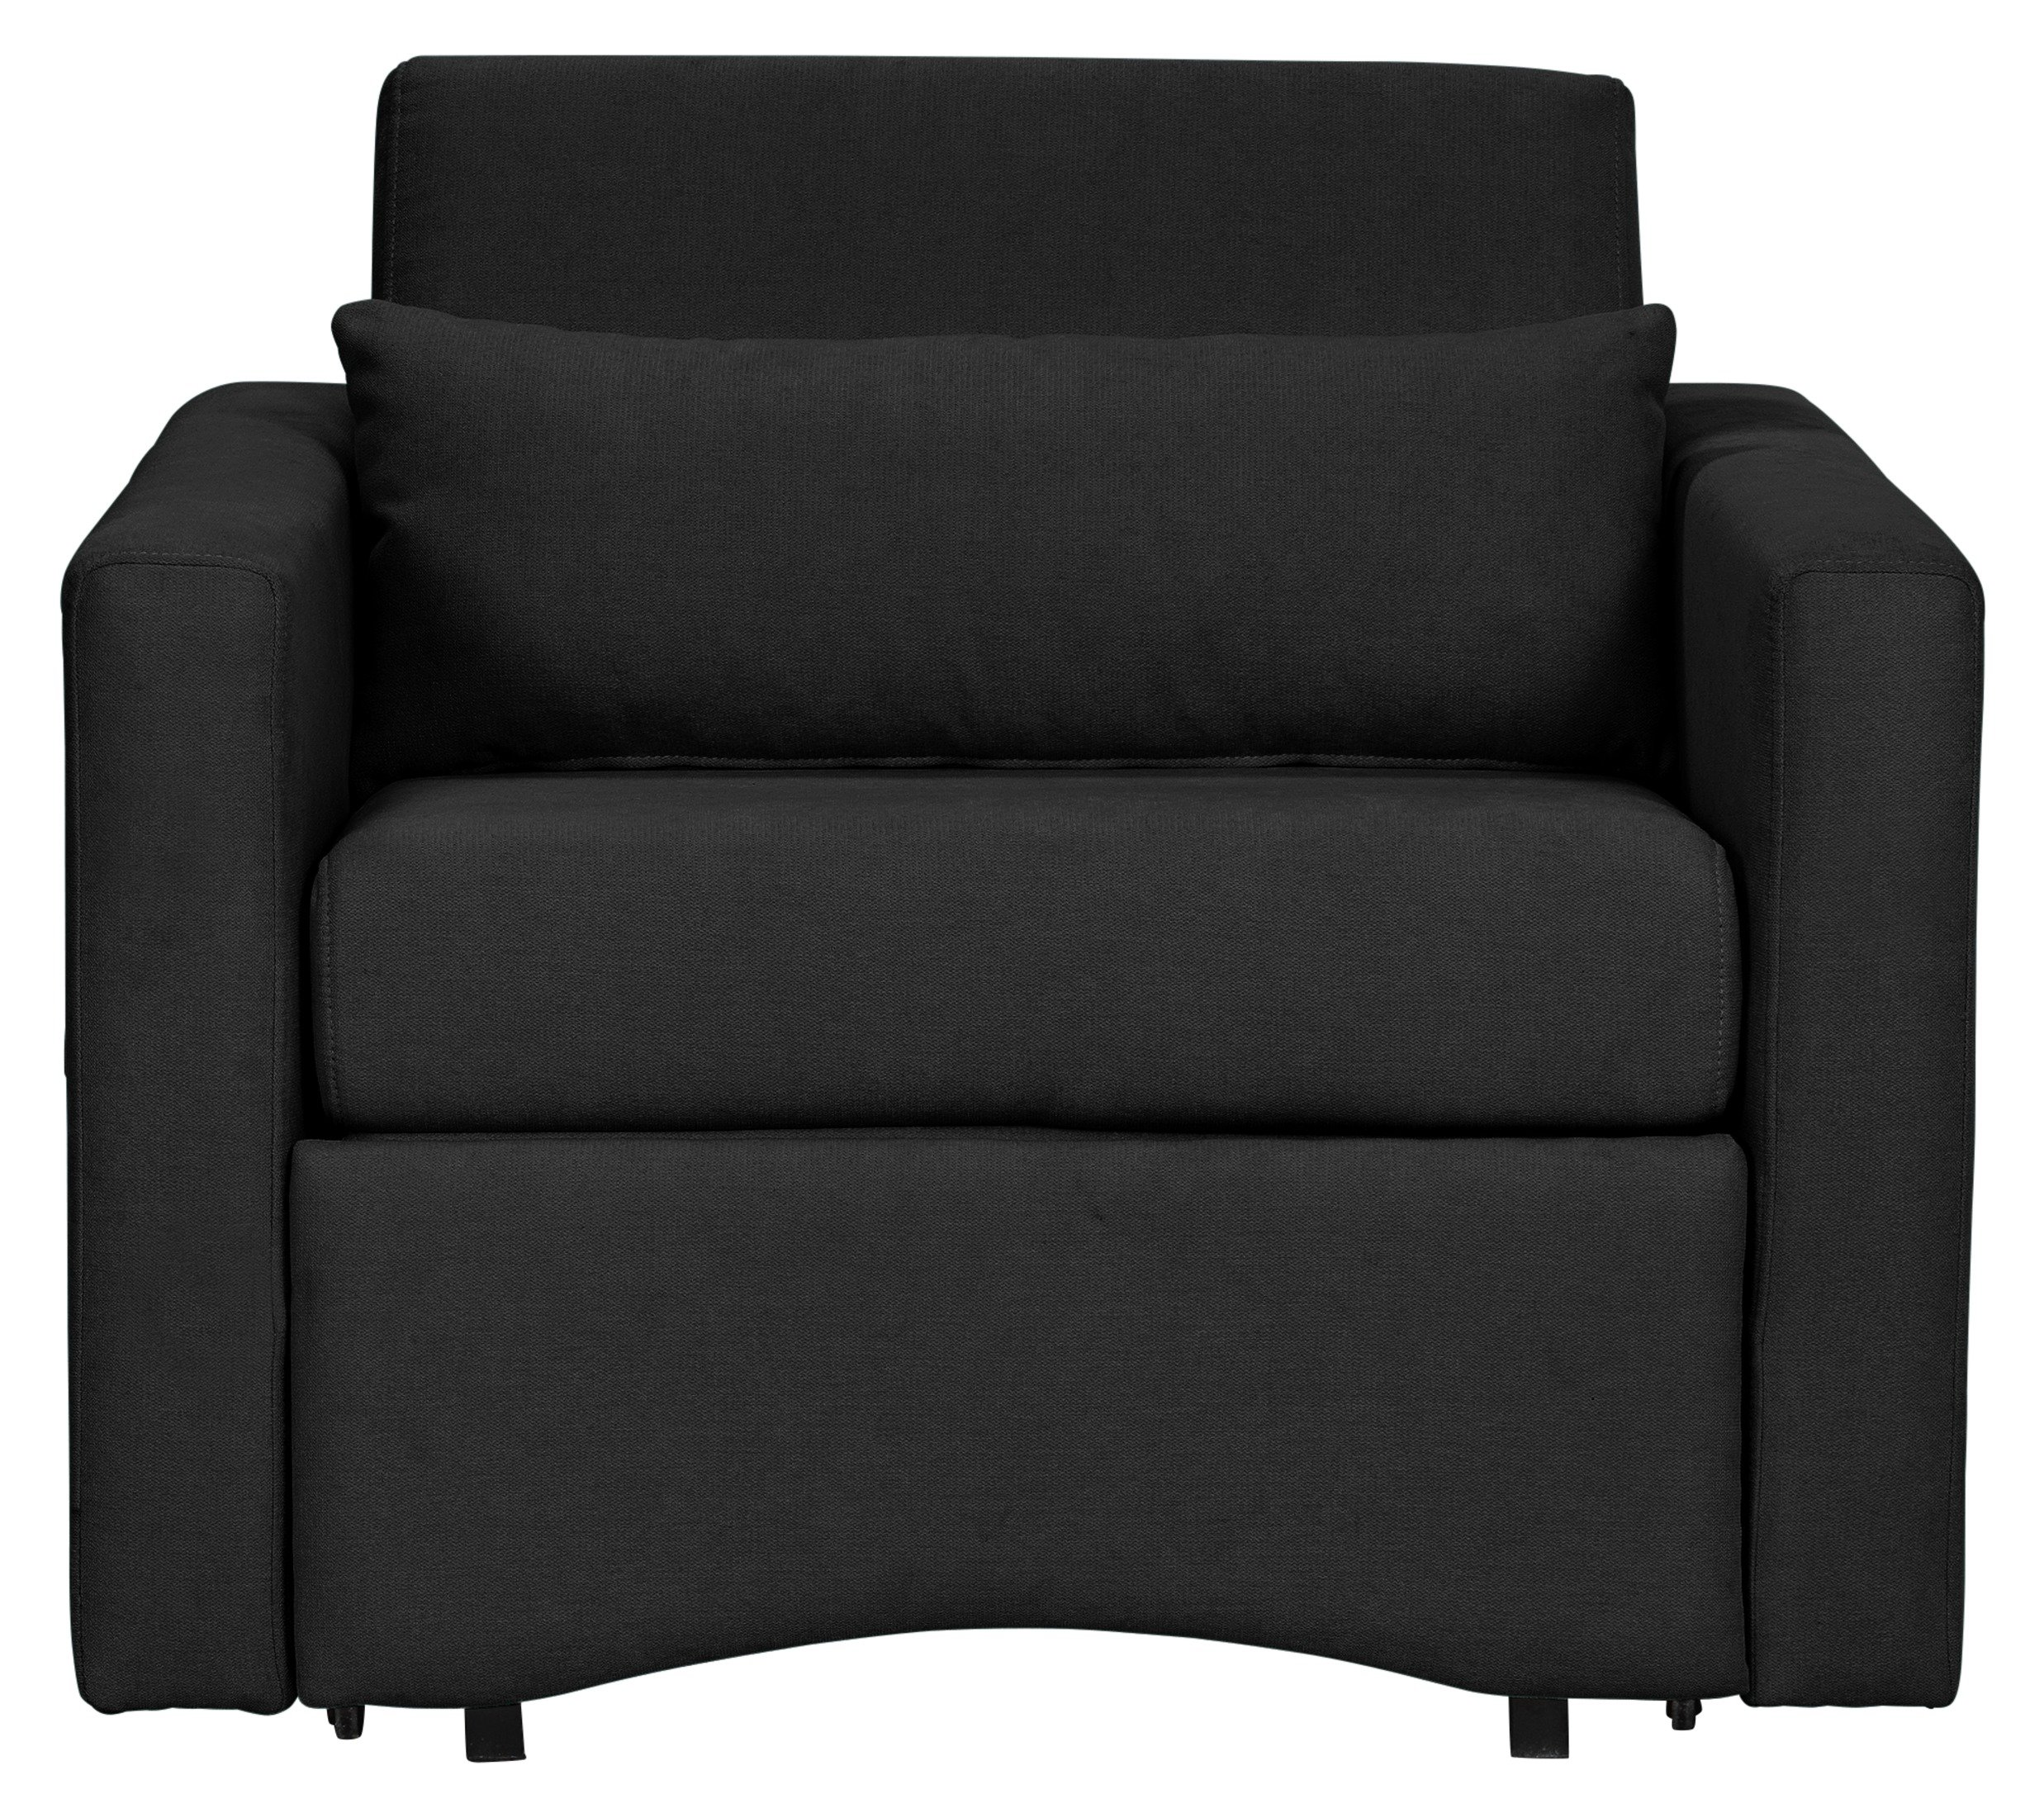 Argos Home Reagan Fabric Chairbed - Charcoal